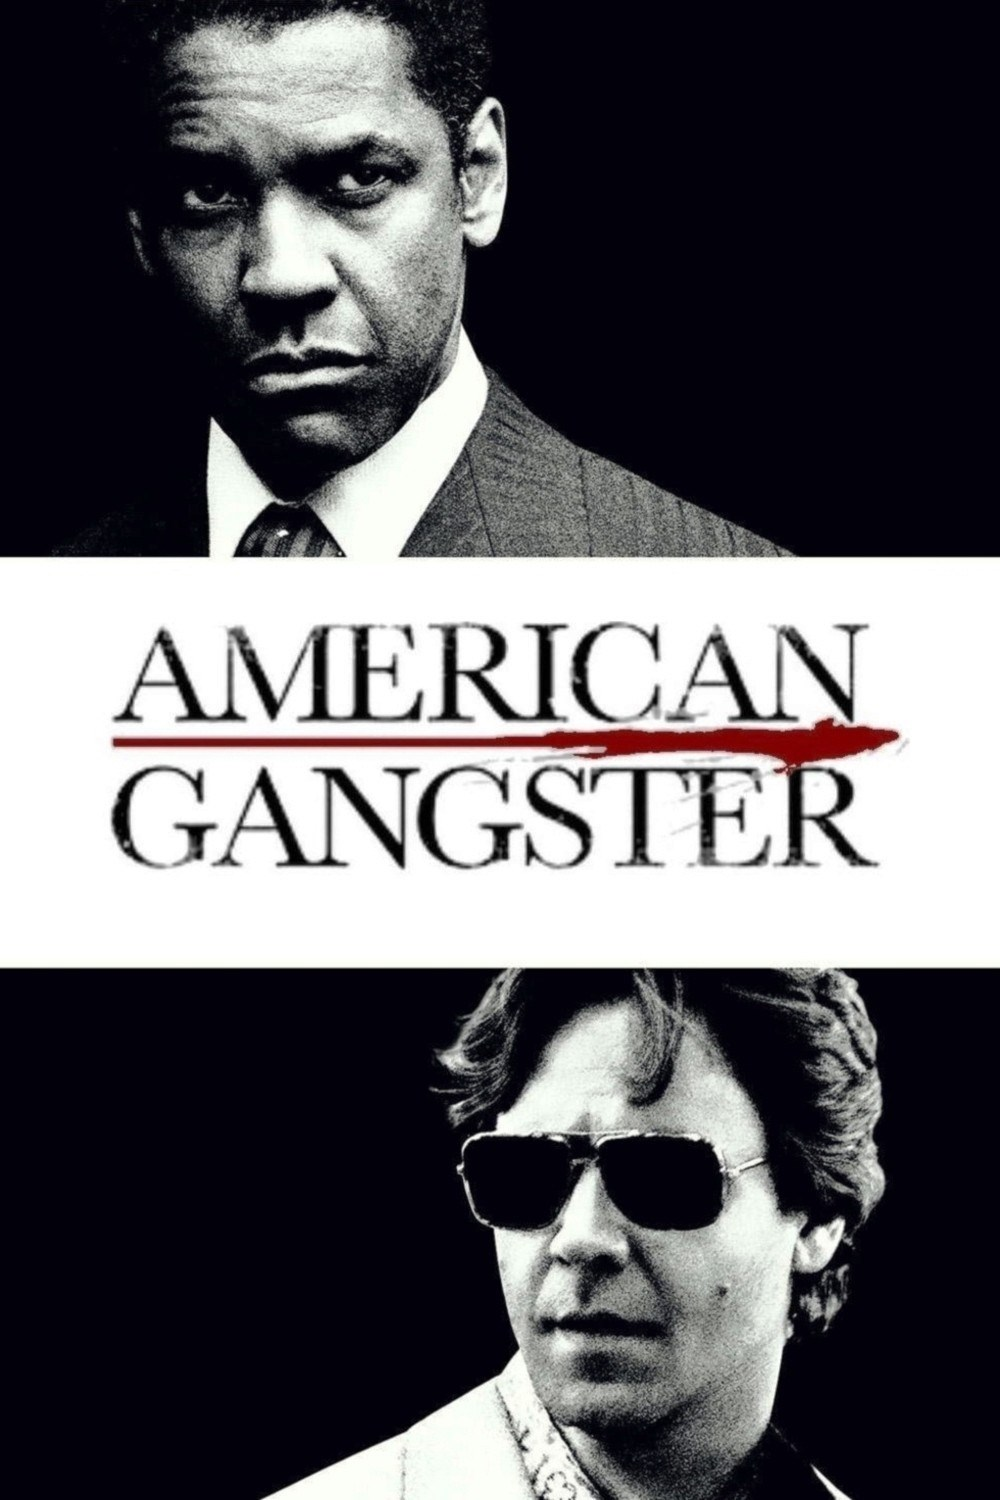 online slots de quotes from american gangster